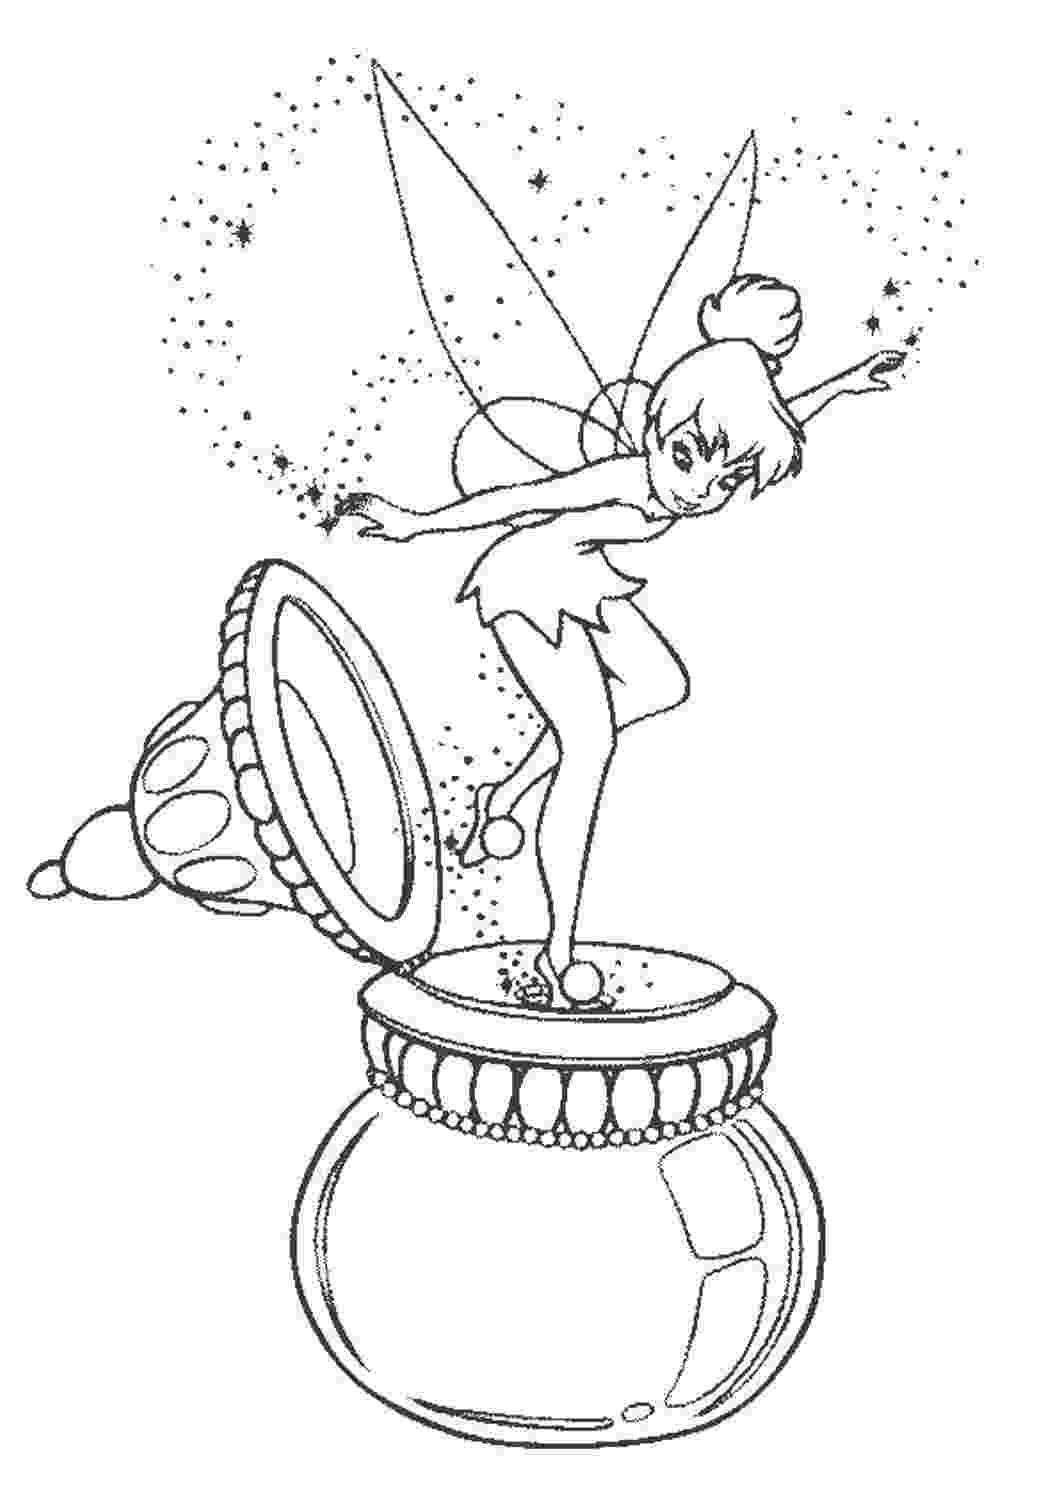 tinker bell coloring pages coloring pages tinkerbell coloring pages and clip art bell coloring pages tinker